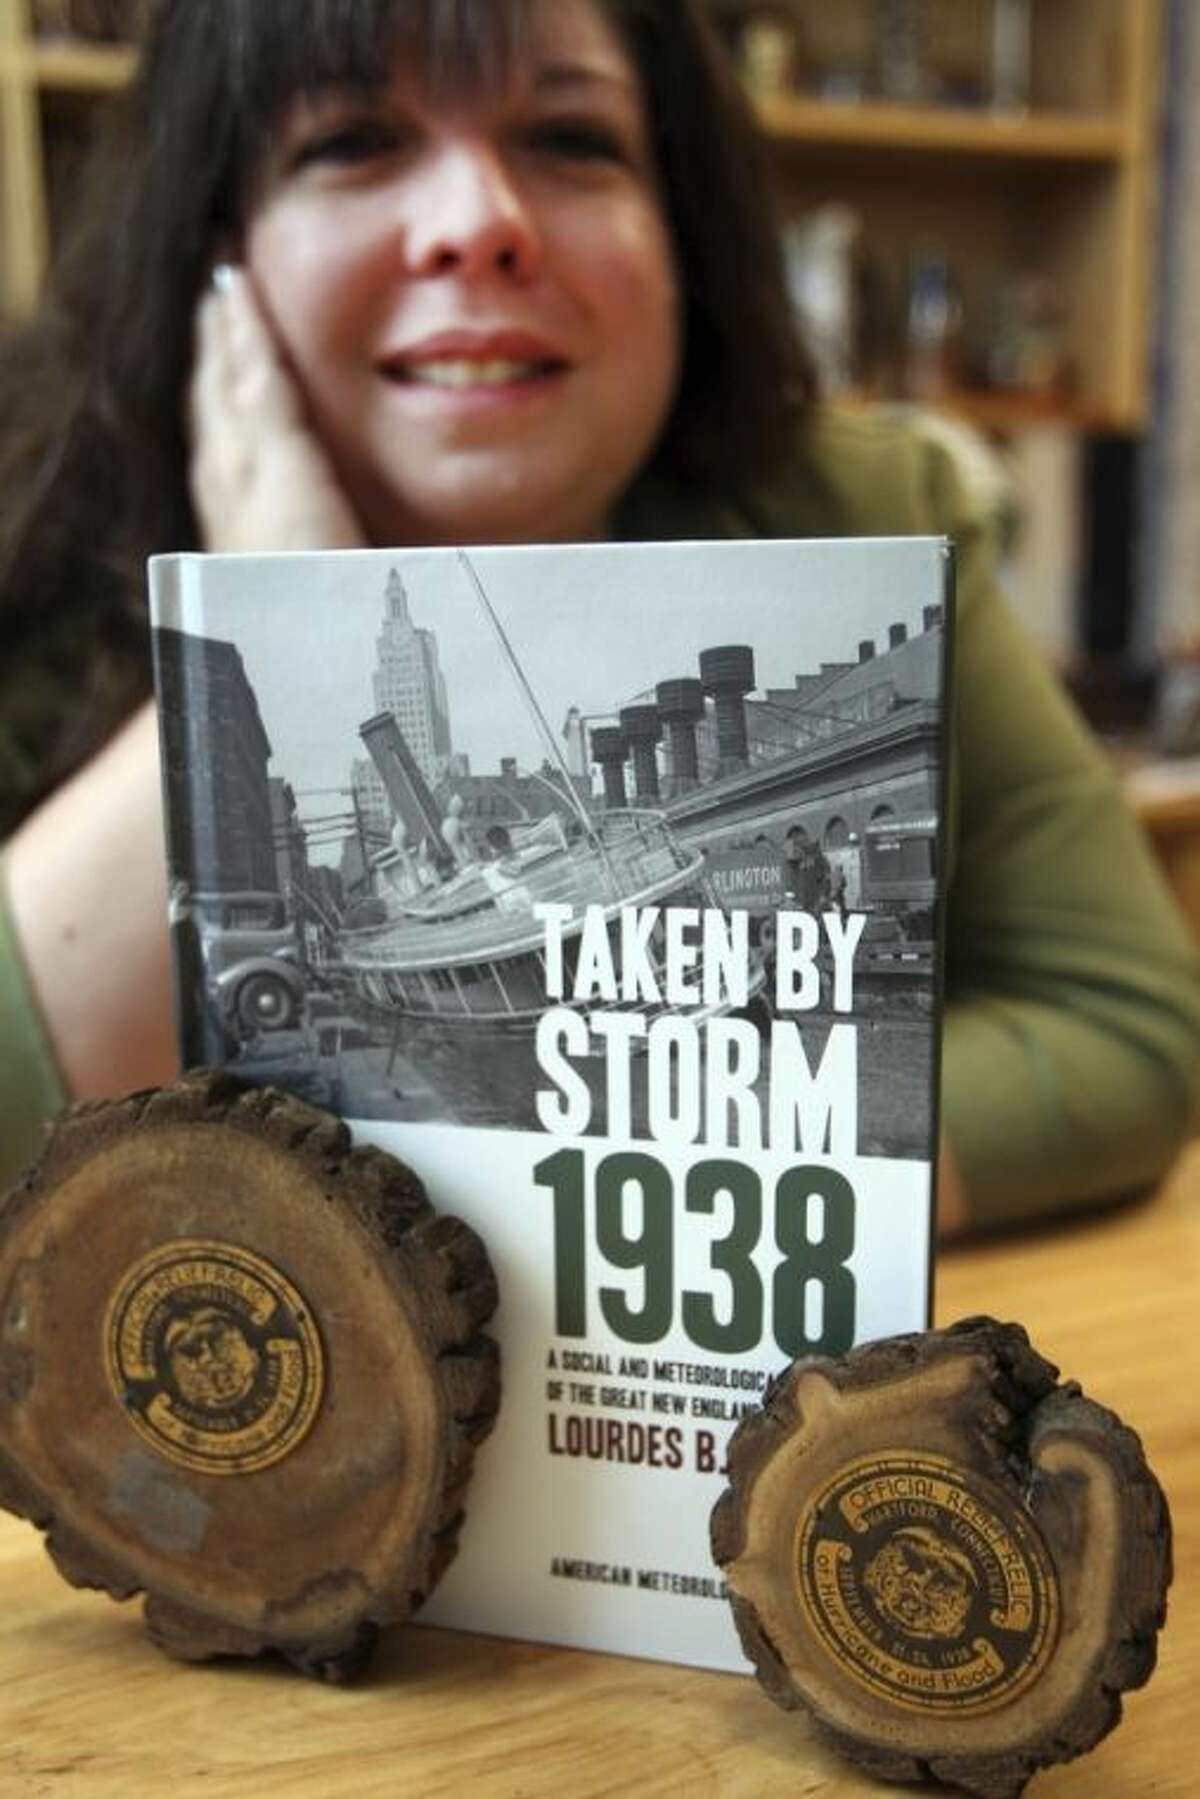 In this photo taken Tuesday, Sept. 17, 2013 in Plymouth, N.H. Plymouth State University meteorology professor Lourdes Aviles poses in front of her book about The Great New England Hurricane of 1938. The hurricane hot New England 75-years ago, Sept. 21, 1938. Seventy-five years later, Aviles said New England could never again be ambushed by a surprise hurricane, given today's forecasting technology. (AP Photo/Jim Cole)